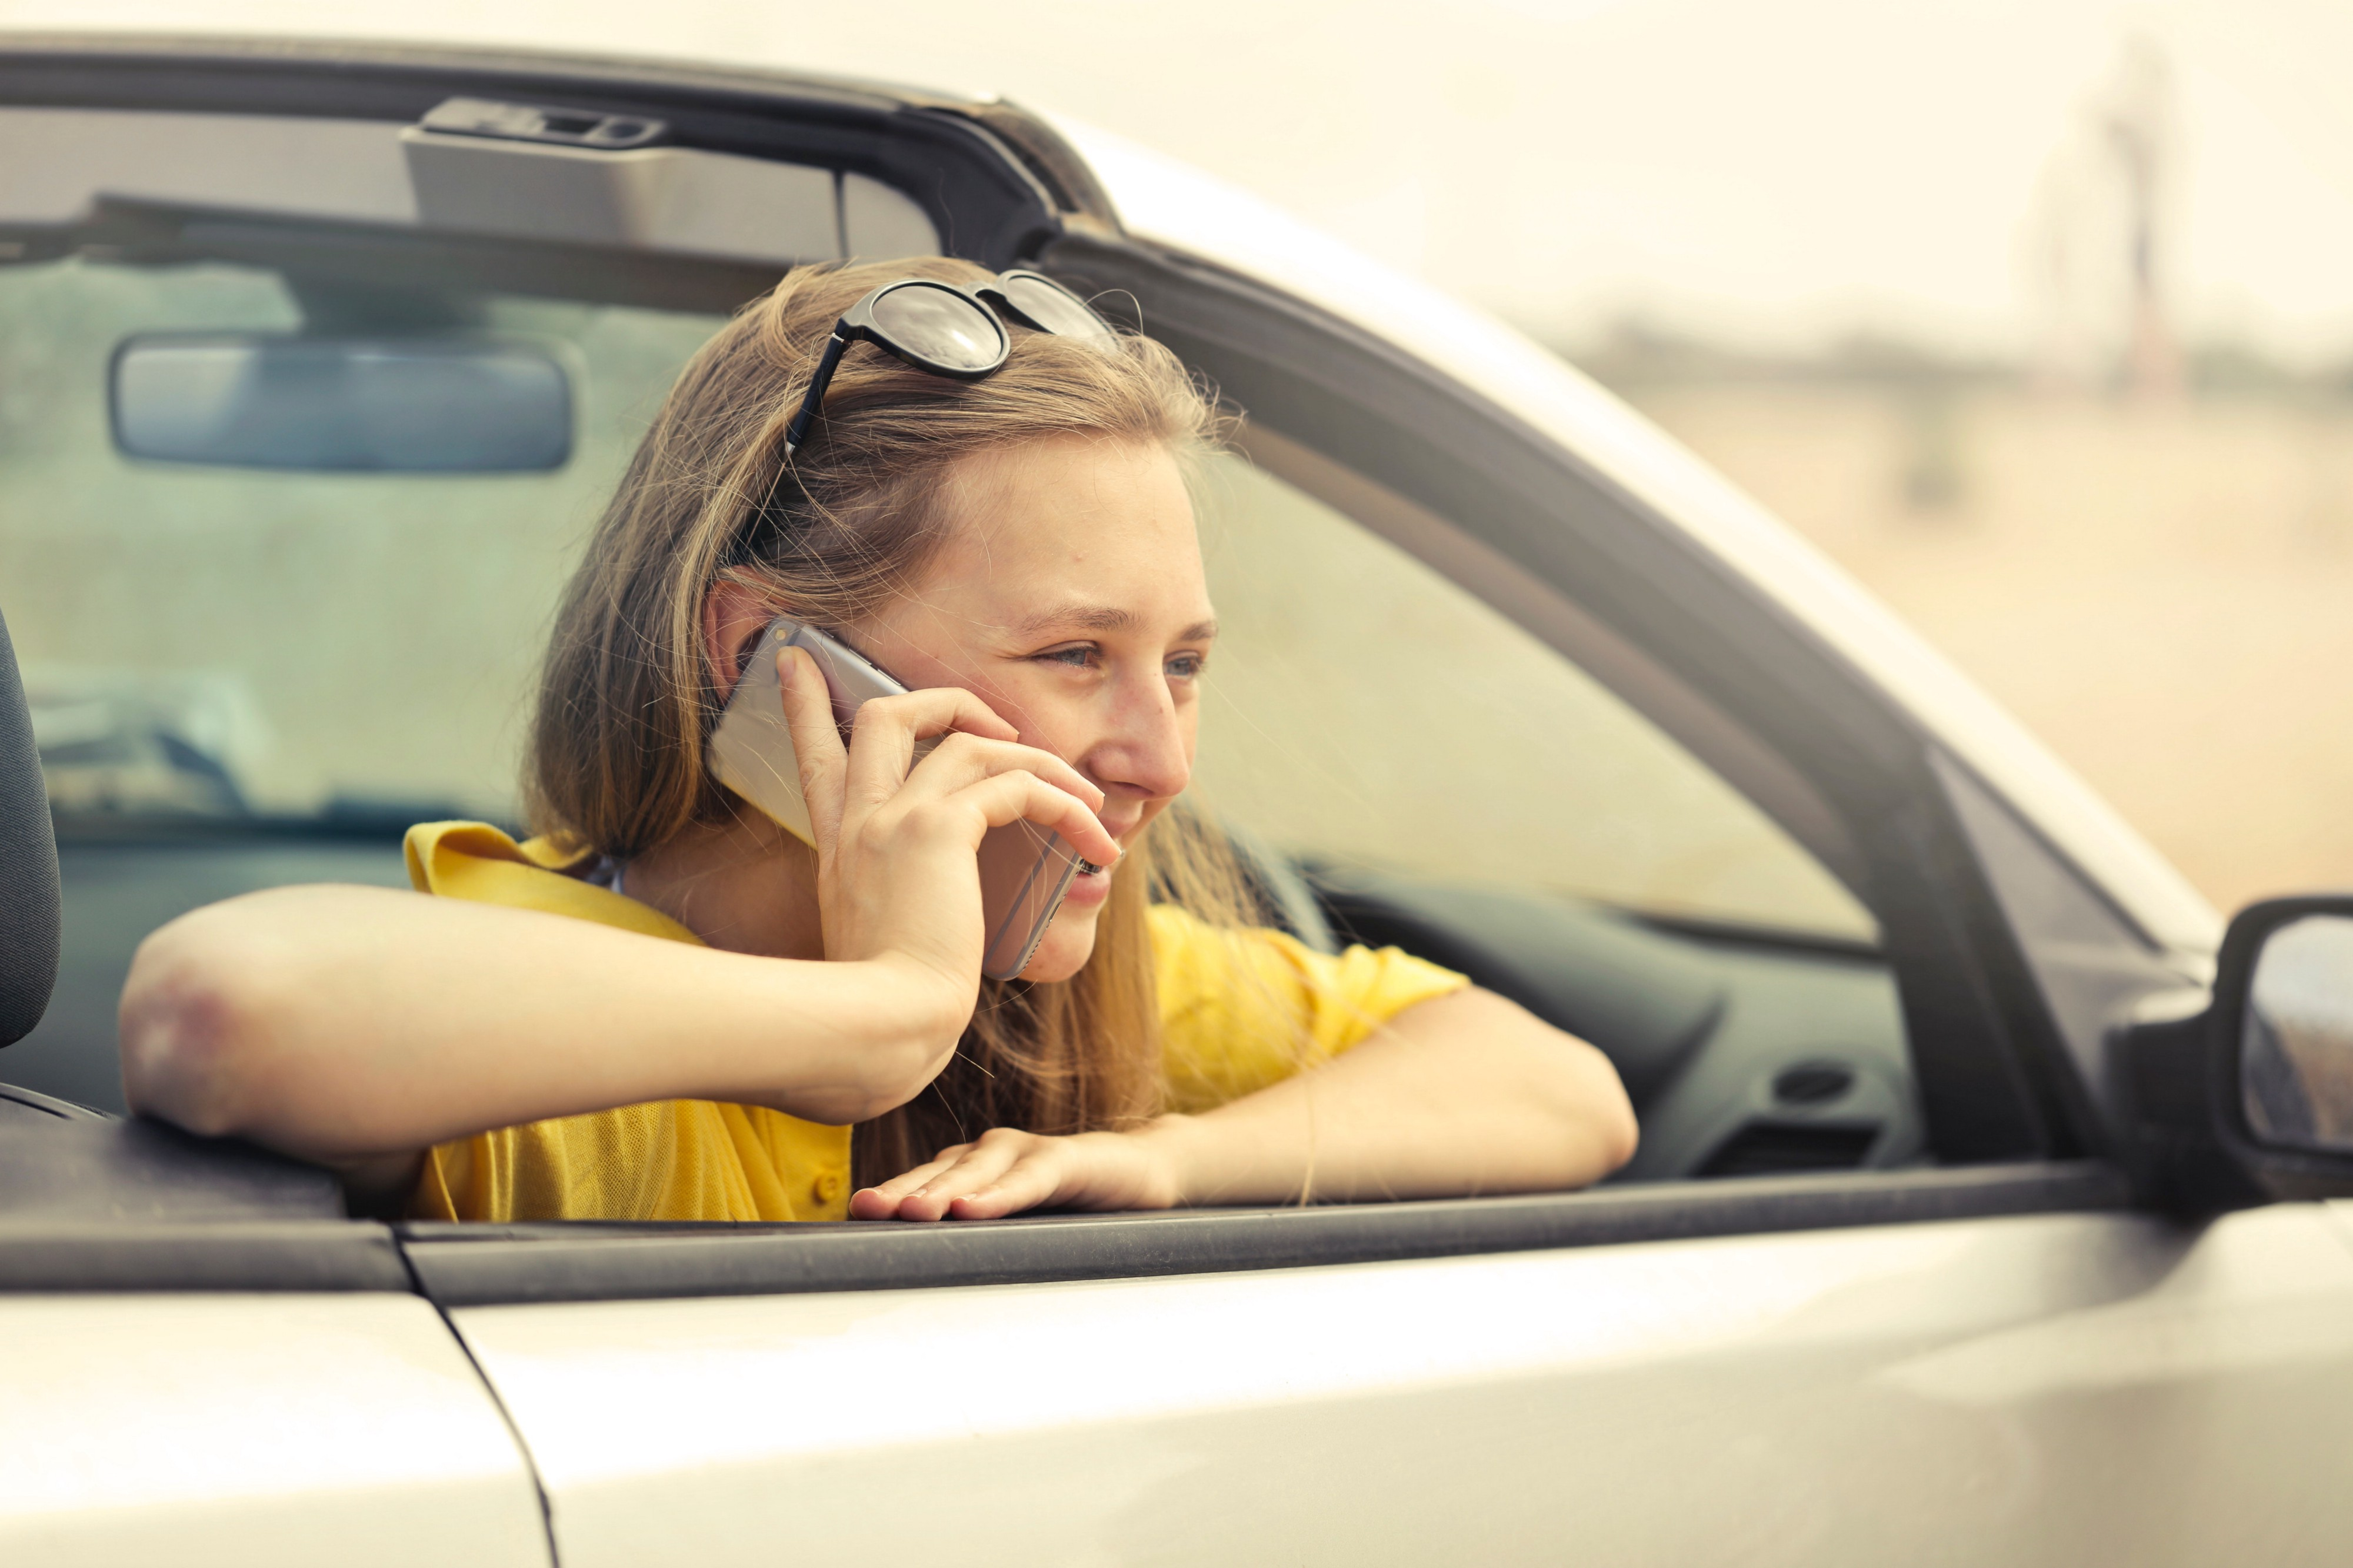 13 Tips on How to Save International Roaming Data Charges